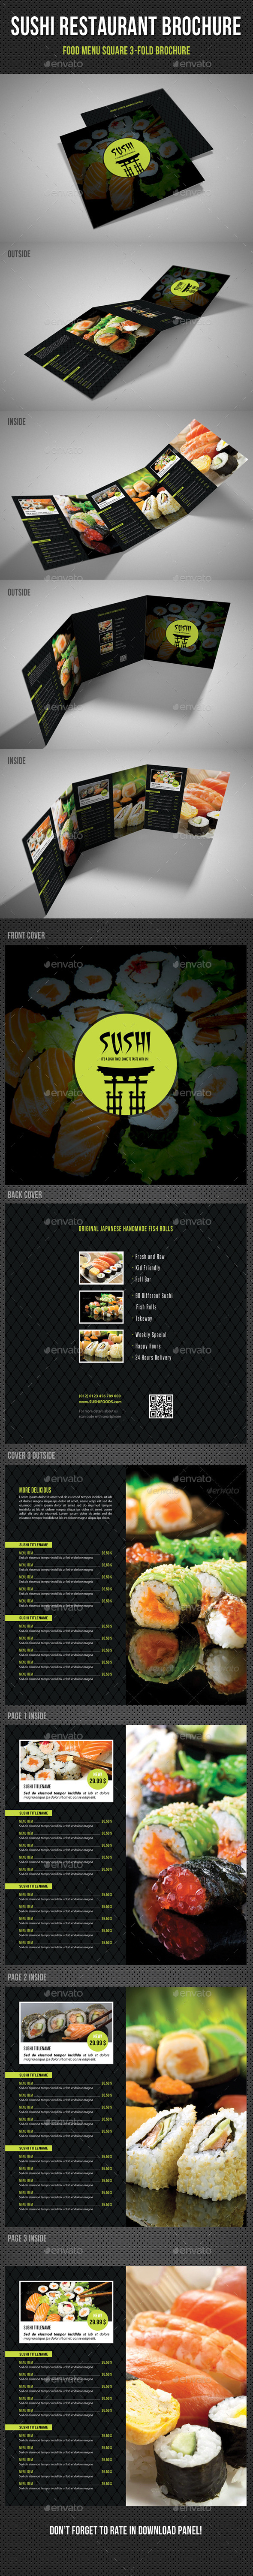 GraphicRiver Sushi Restaurant Menu Square 3-Fold Brochure 02 11313833